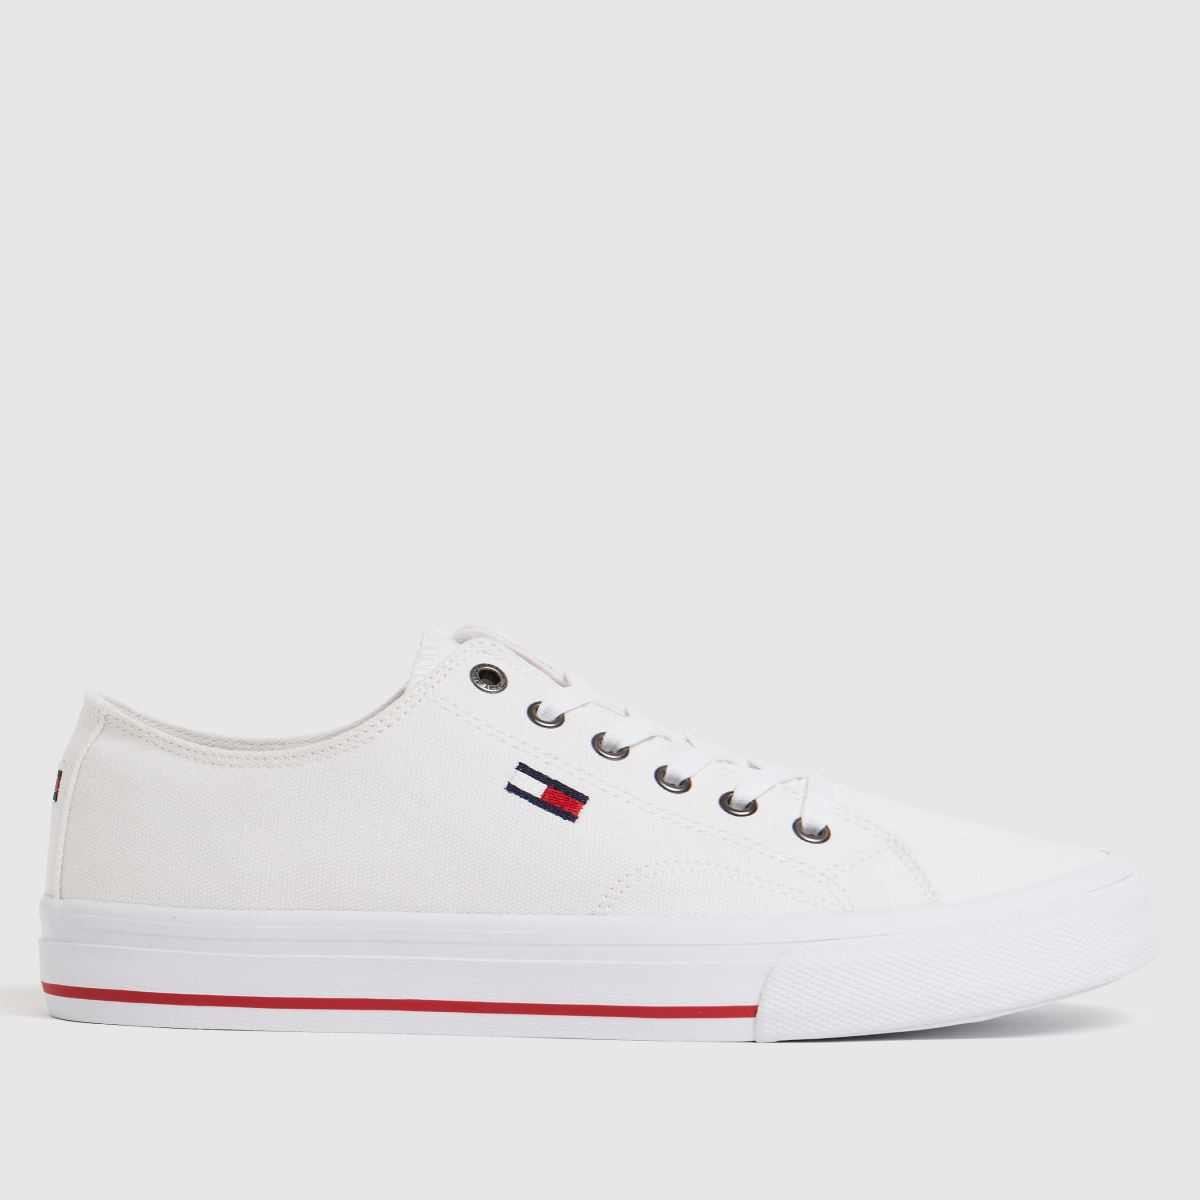 Tommy Hilfiger White Low Cut Vulc Sneaker Trainers